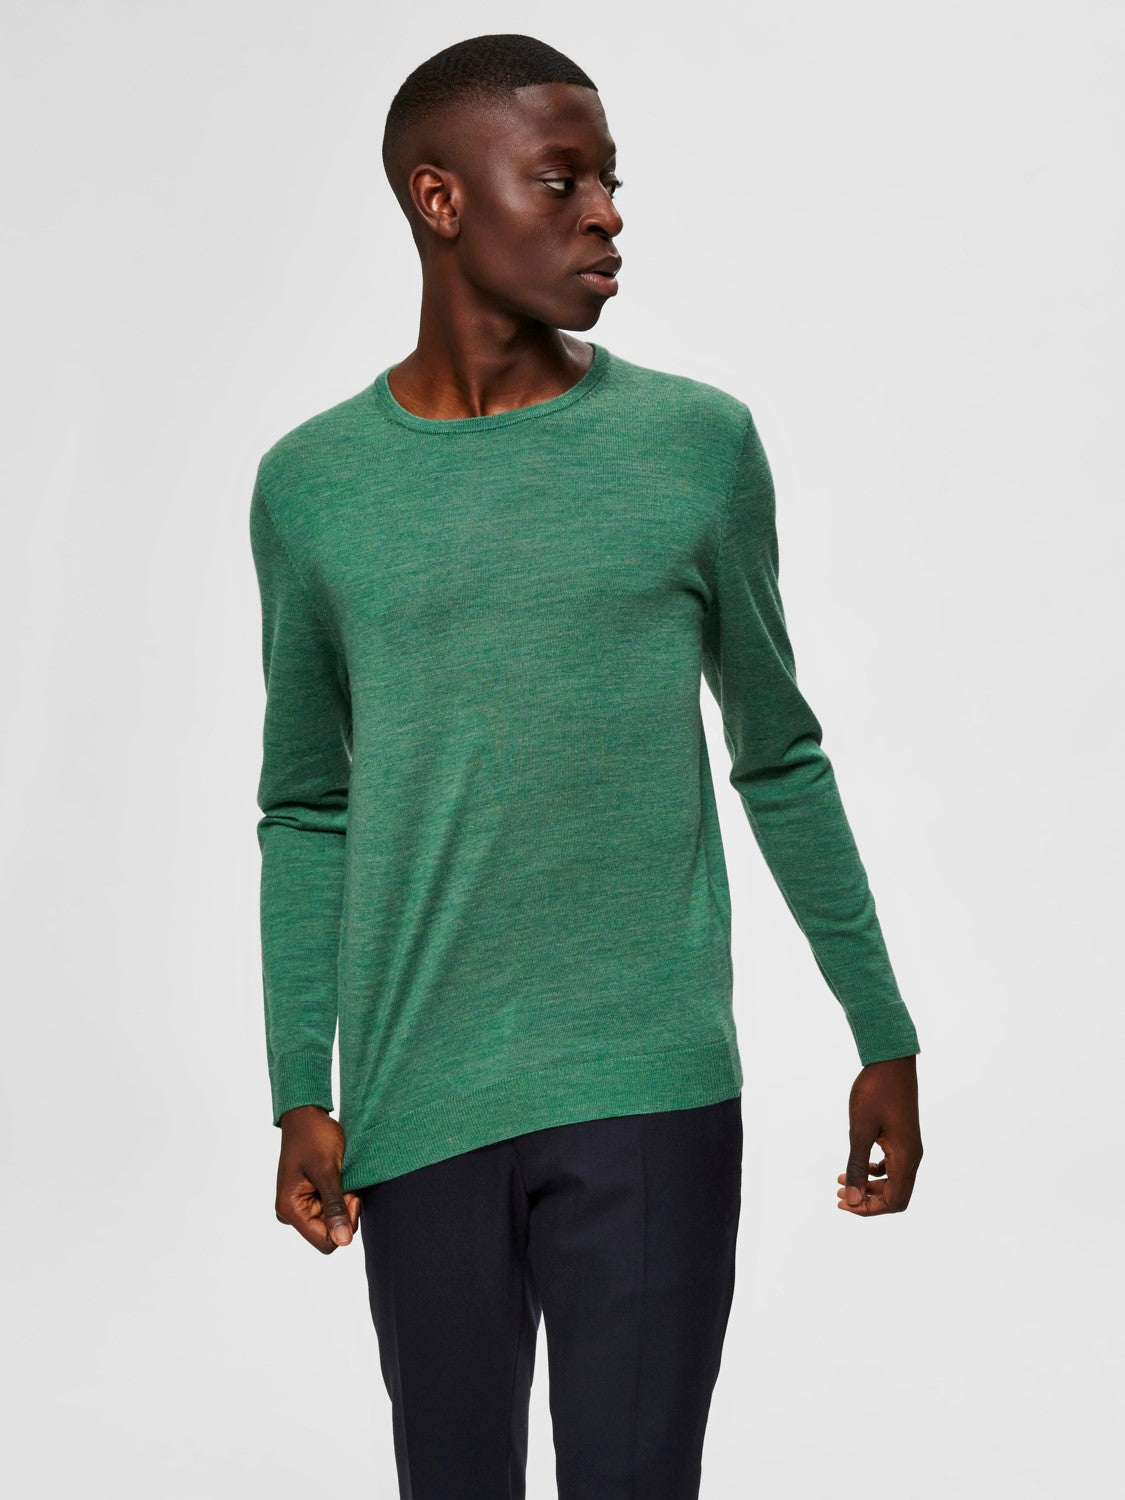 Selectedhomme tower new merino cedar green